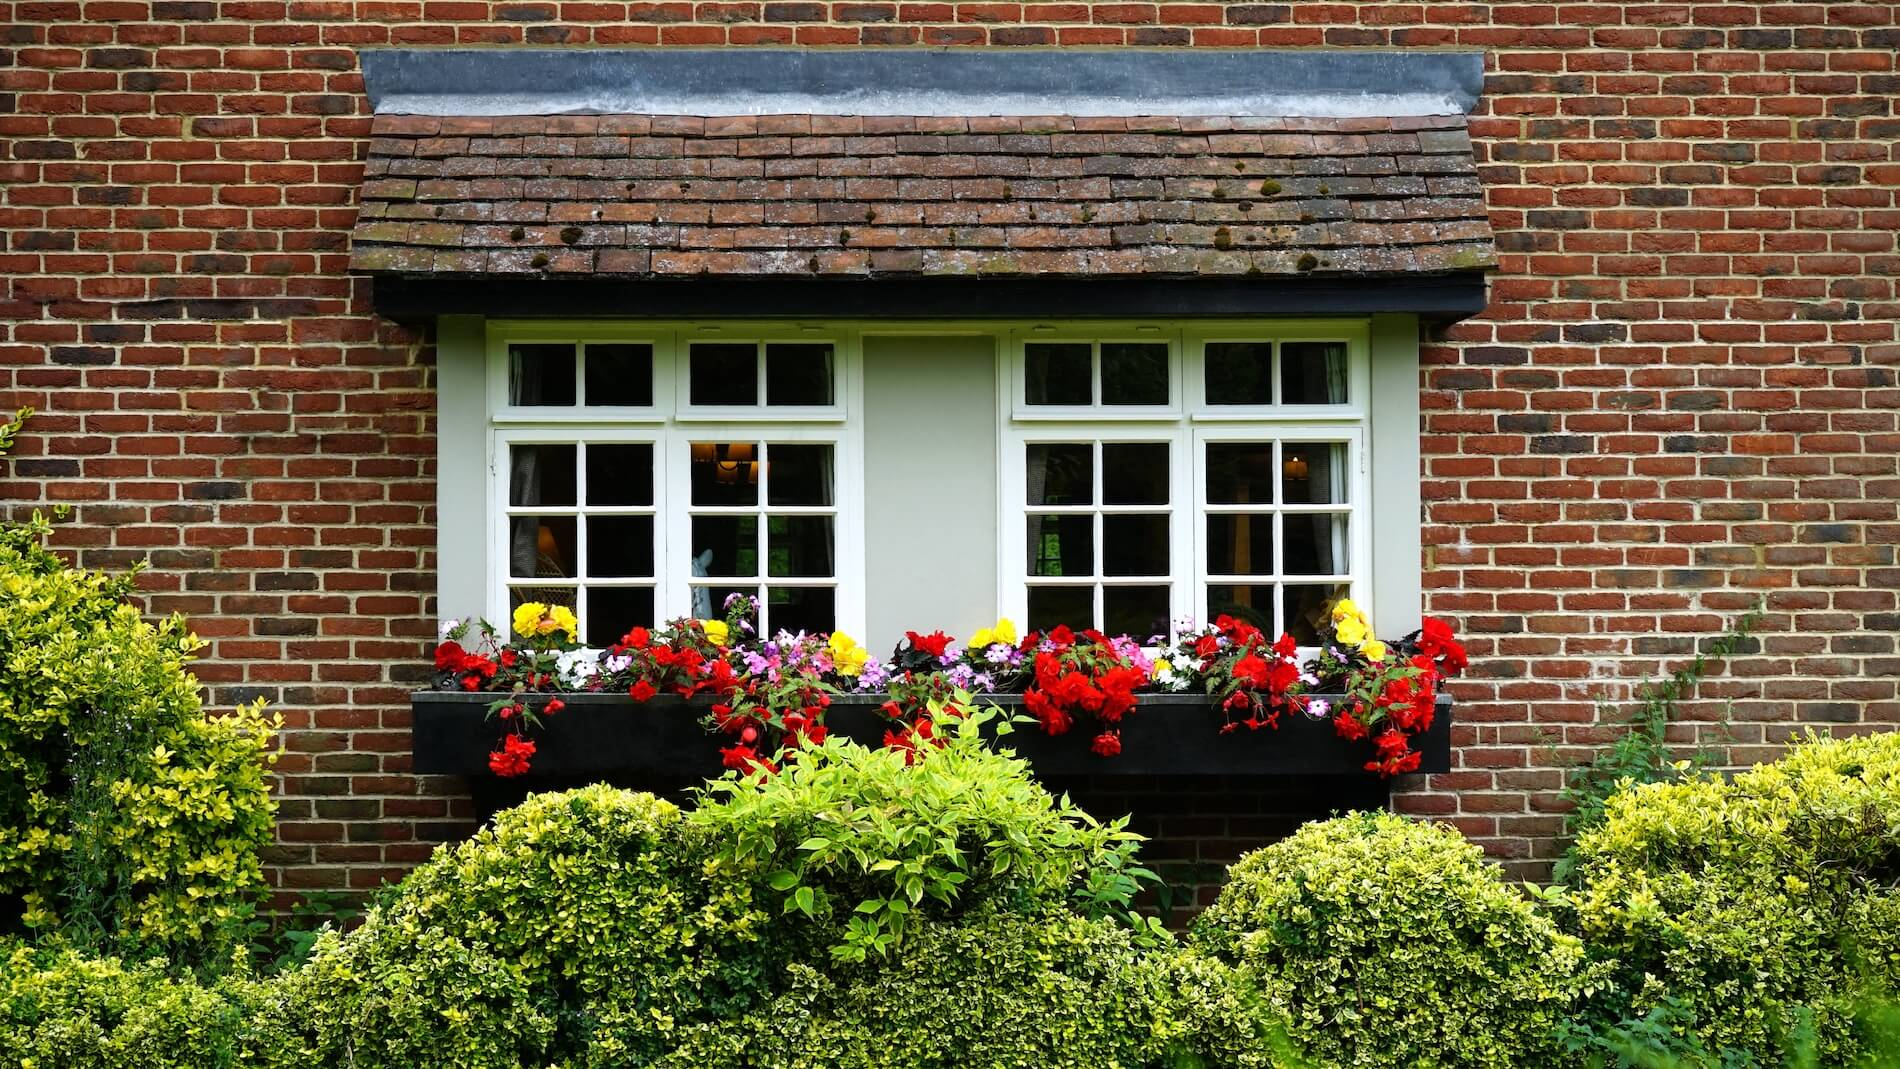 Sliding sash windows with flowerbox